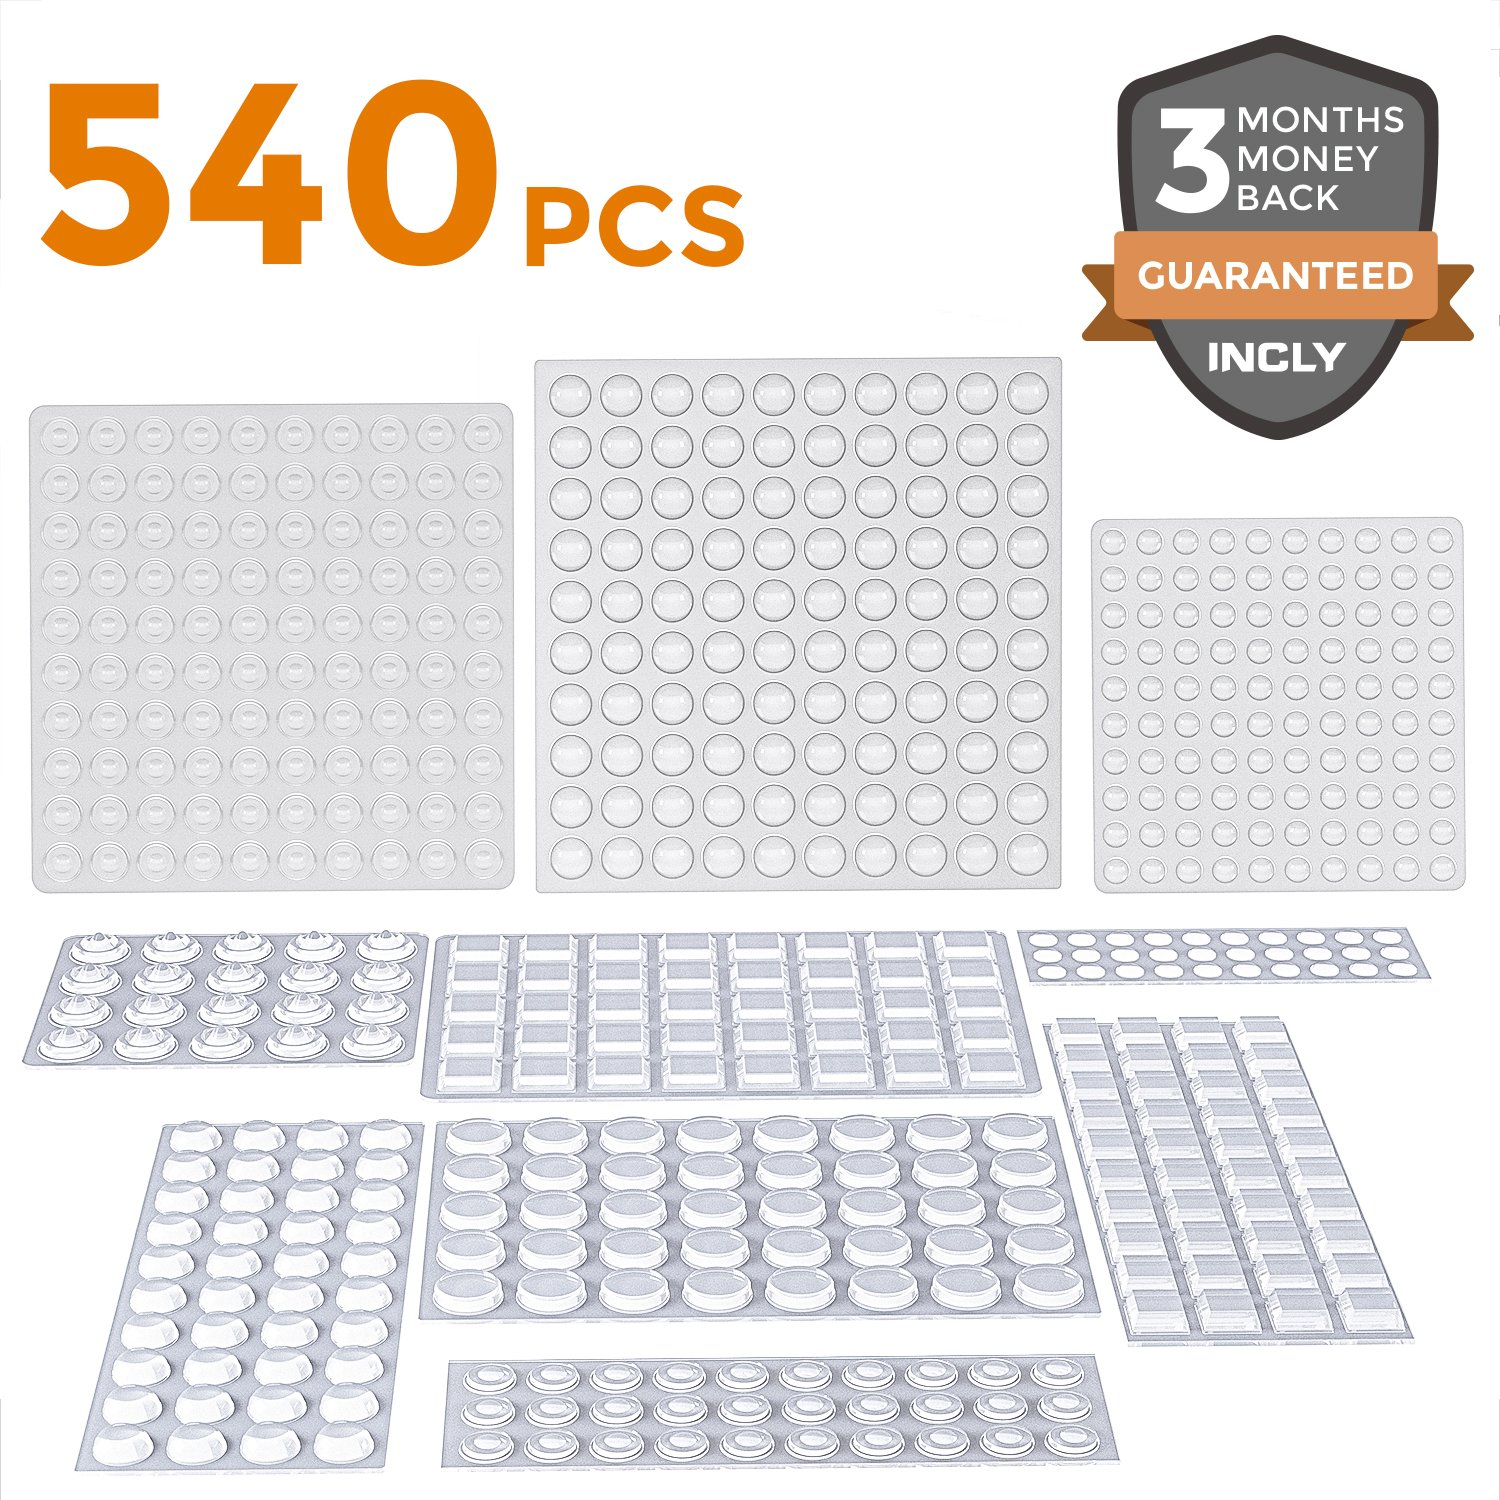 540 Pack Incly Self Adhesive Clear Bumpers Pads,Silicone Cabinet Pads Noise Dampening Rubber Bumpers 8 Size for Home Kitchen Door Drawer Furniture